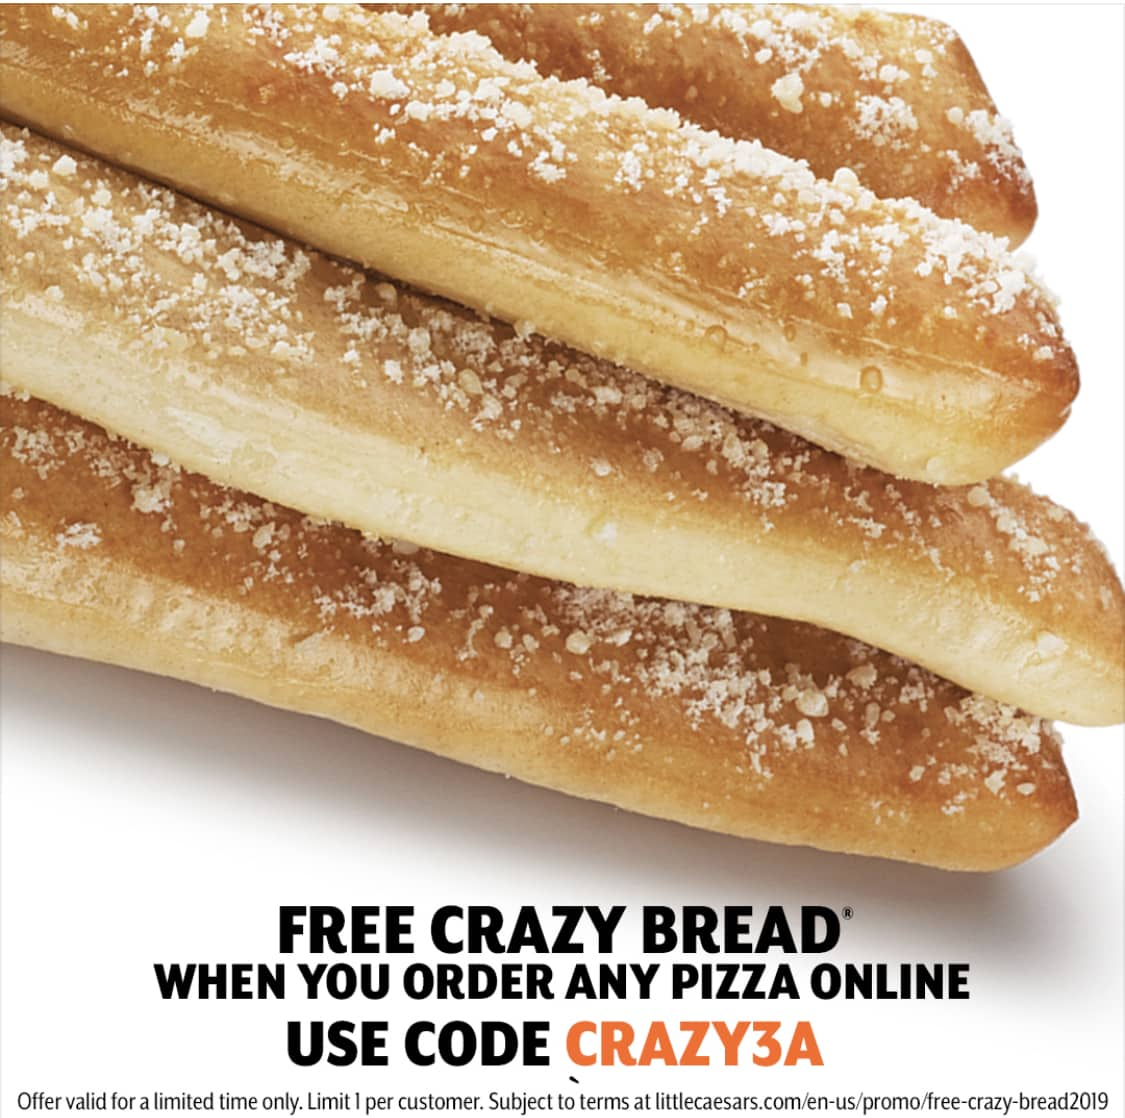 Little Caesars: Free Crazy Bread with Online Order